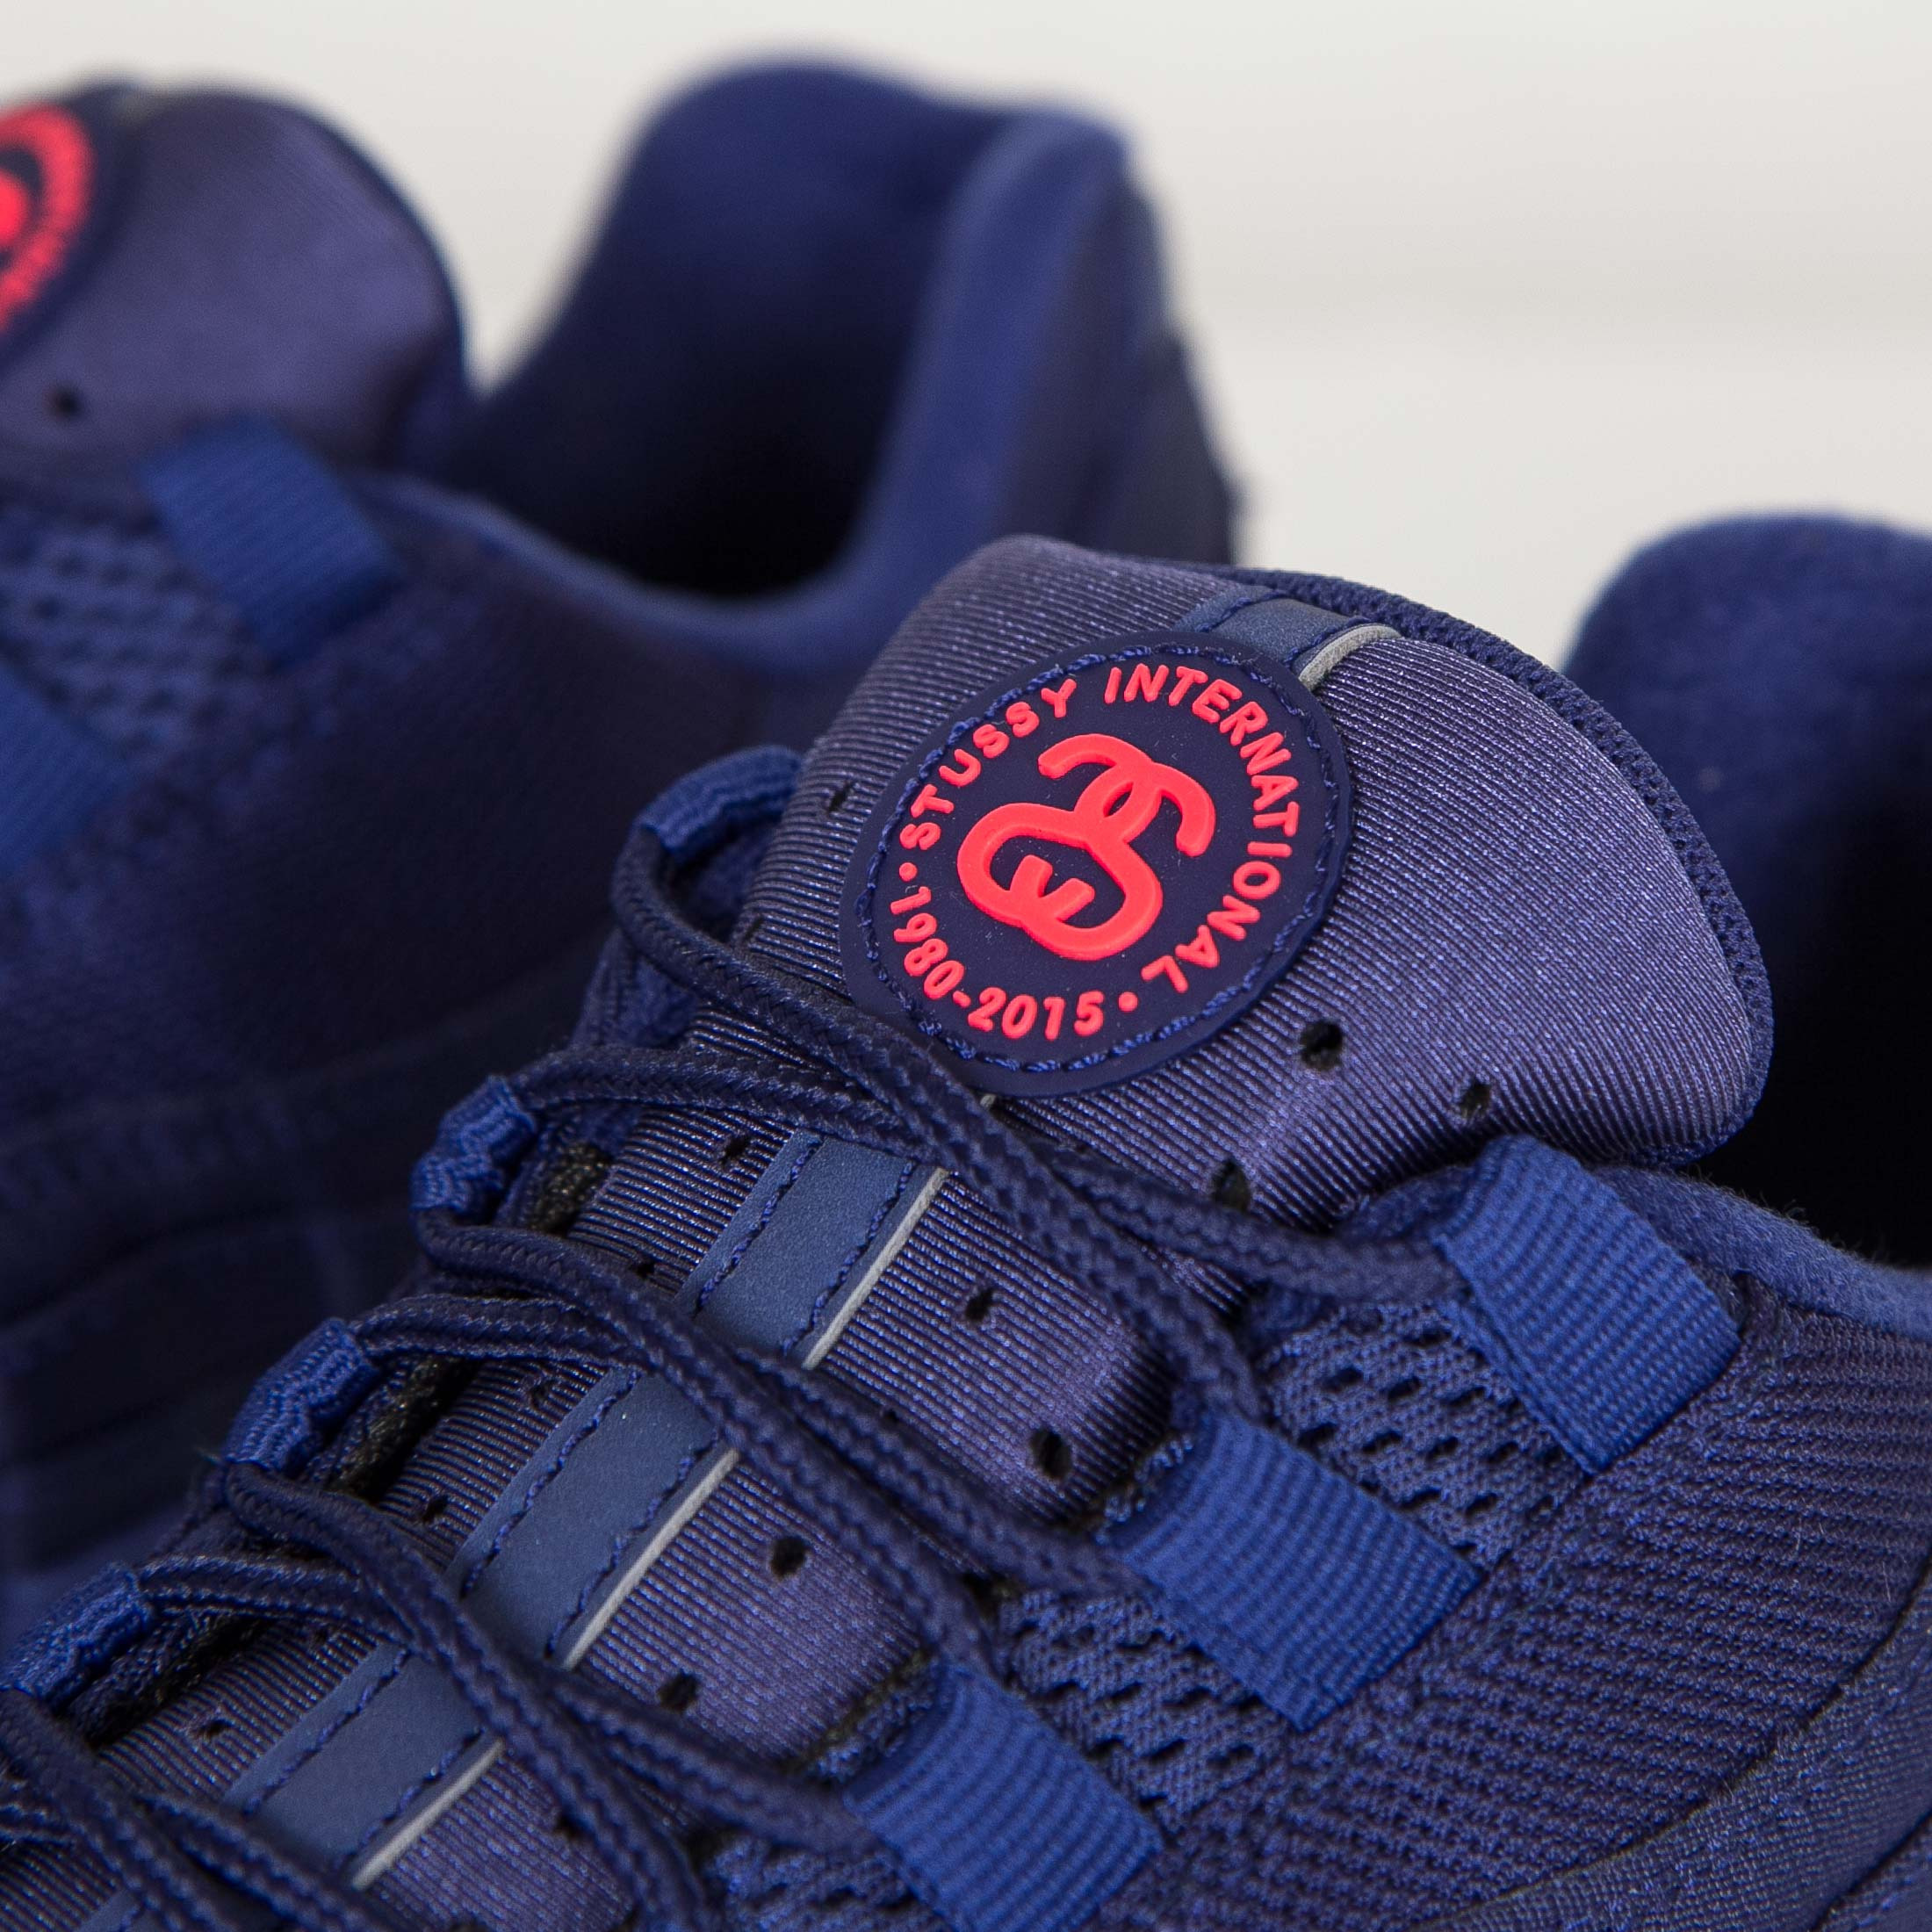 new product 8e72d 1efb5 Nike Air Max 95   Stussy - 834668-441 - Sneakersnstuff   sneakers    streetwear online since 1999